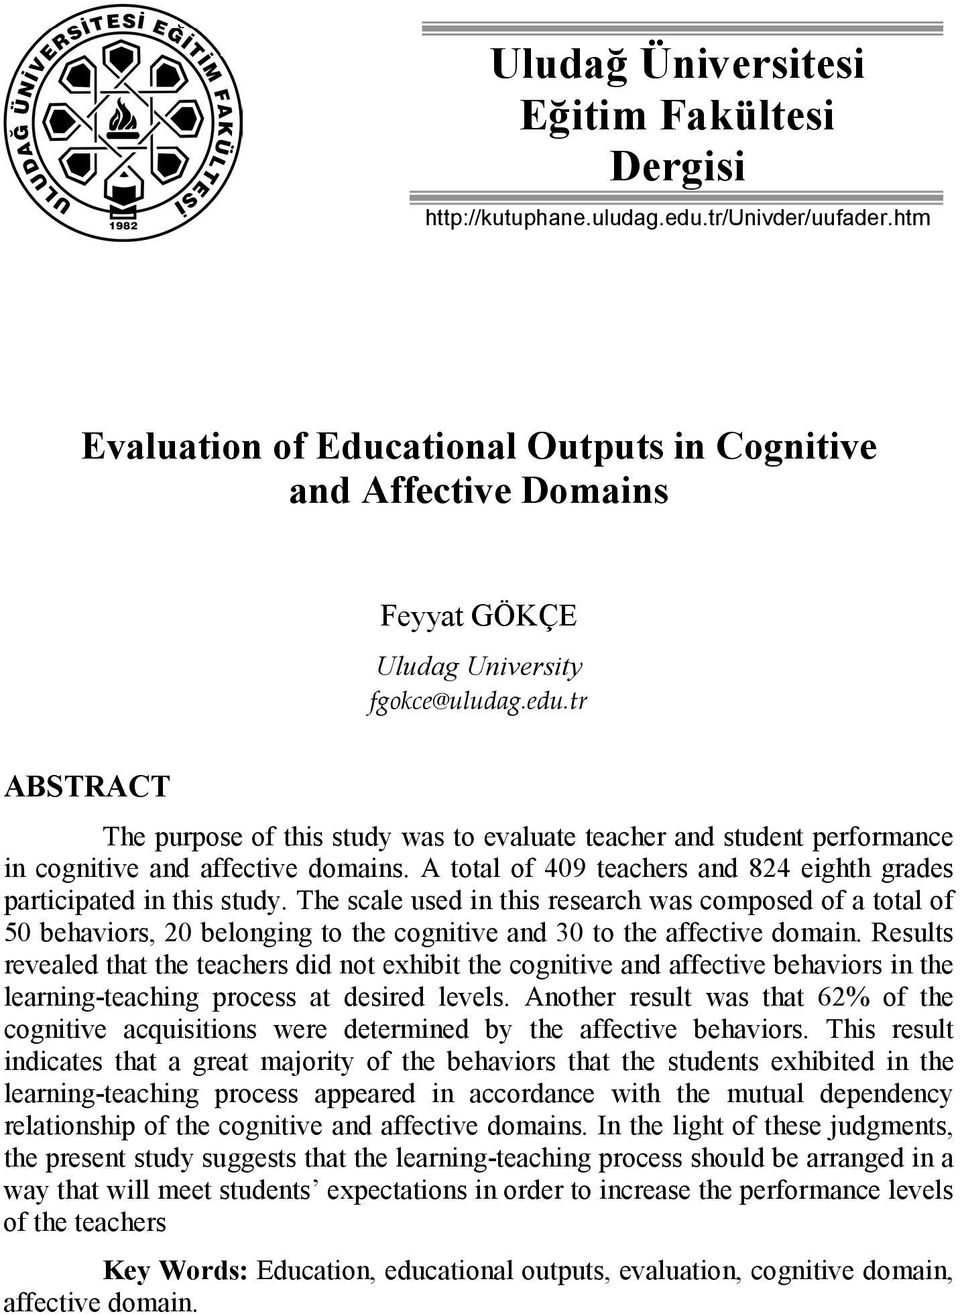 tr ABSTRACT The purpose of this study was to evaluate teacher and student performance in cognitive and affective domains. A total of 409 teachers and 824 eighth grades participated in this study.